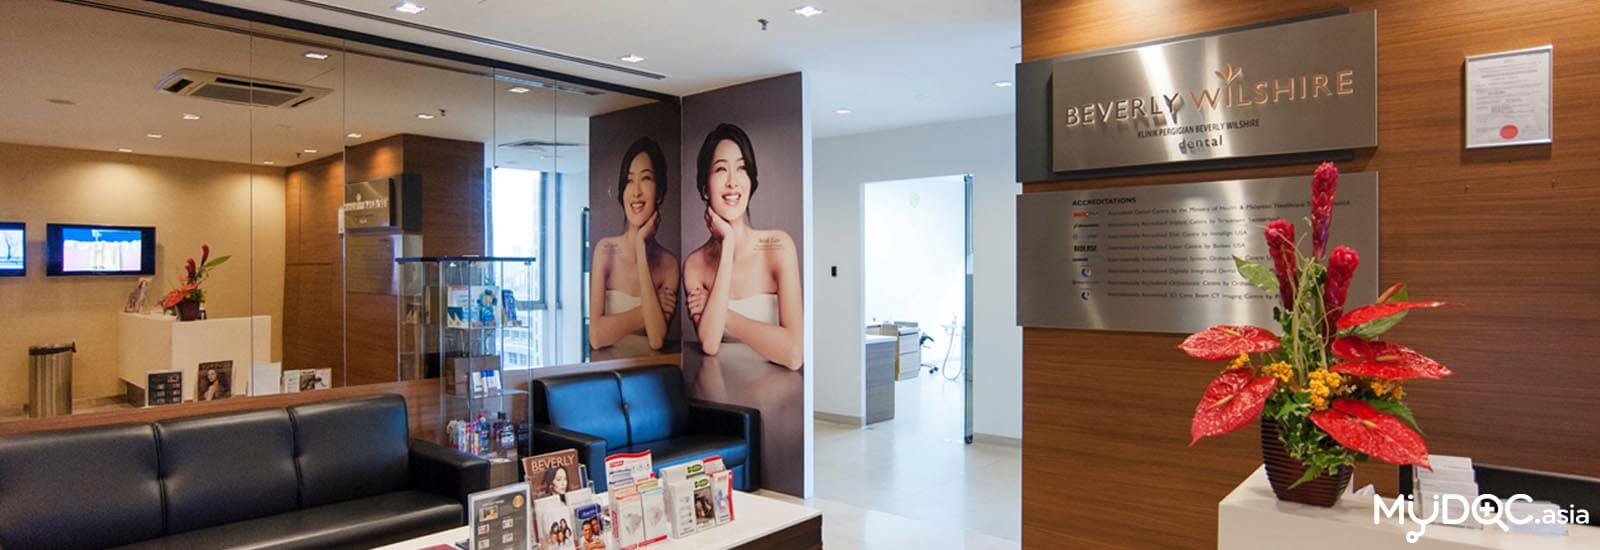 Beverly Wilshire Dental Centre (KL)